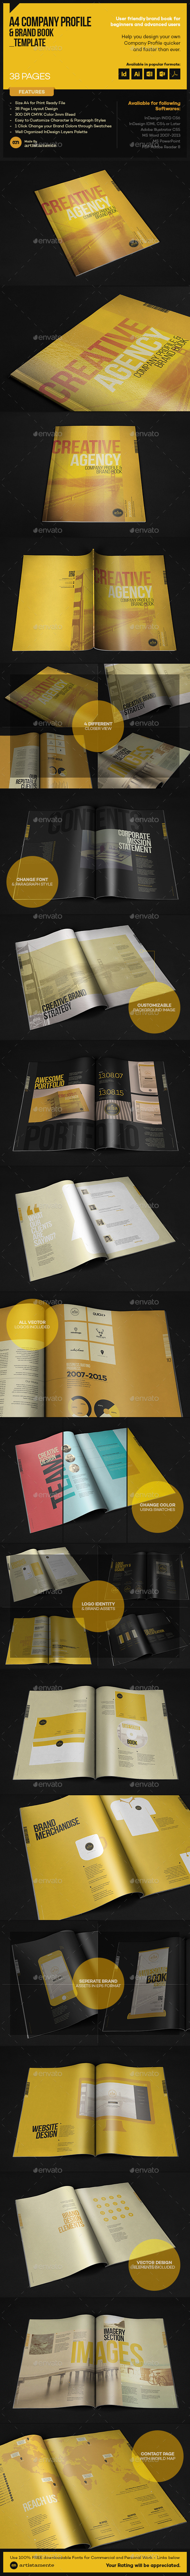 GraphicRiver Company Profile & Brand Book Template 11438117